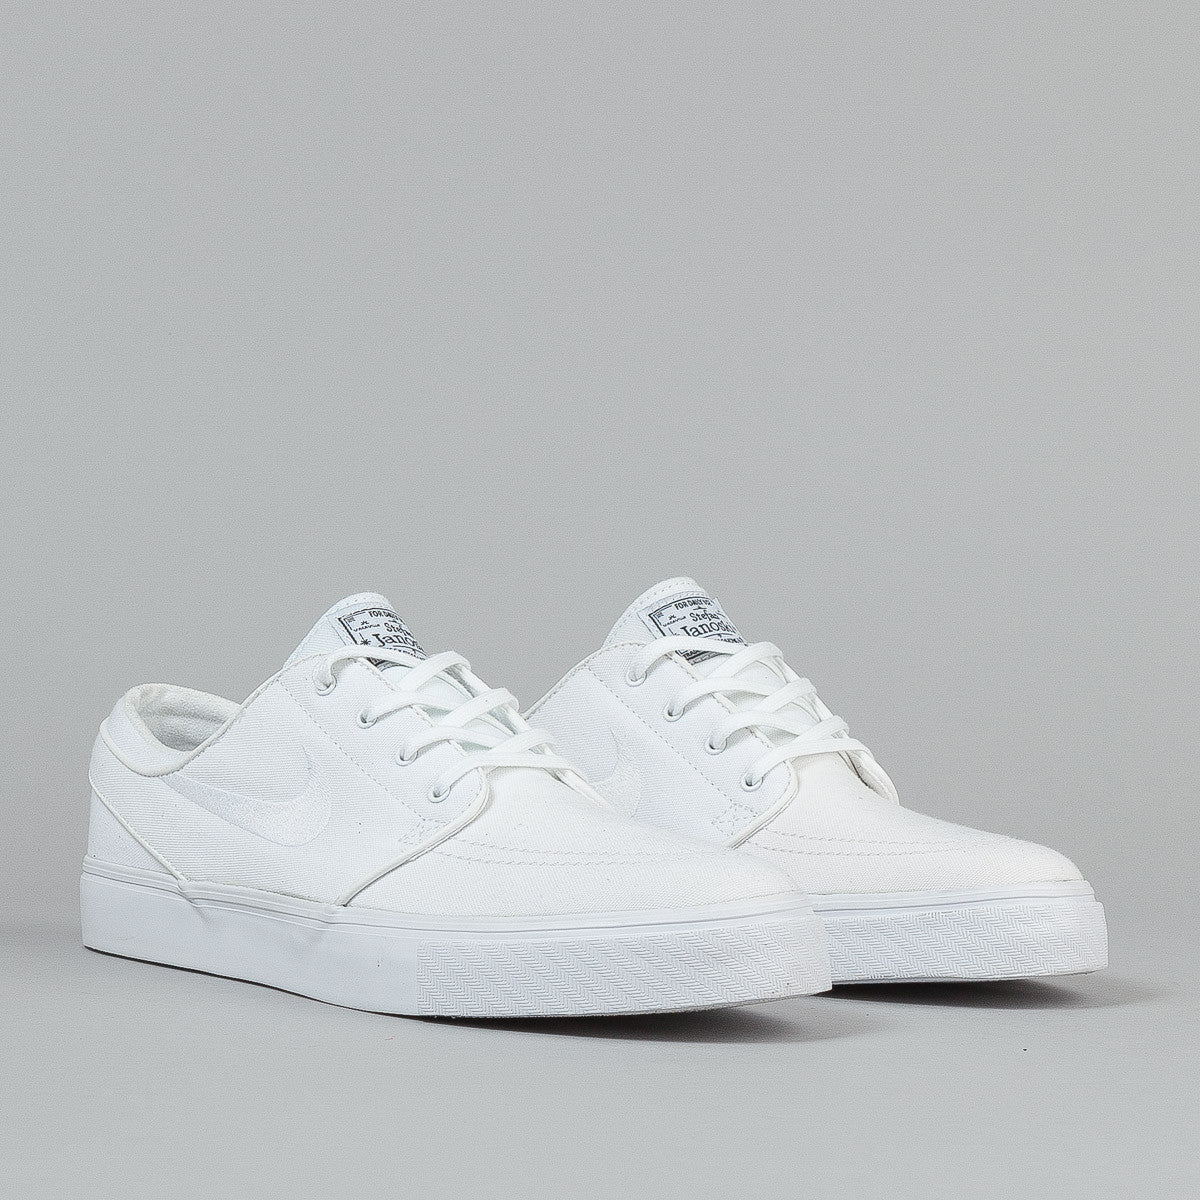 Nike SB Stefan Janoski CNVS Shoes - White / White / Black